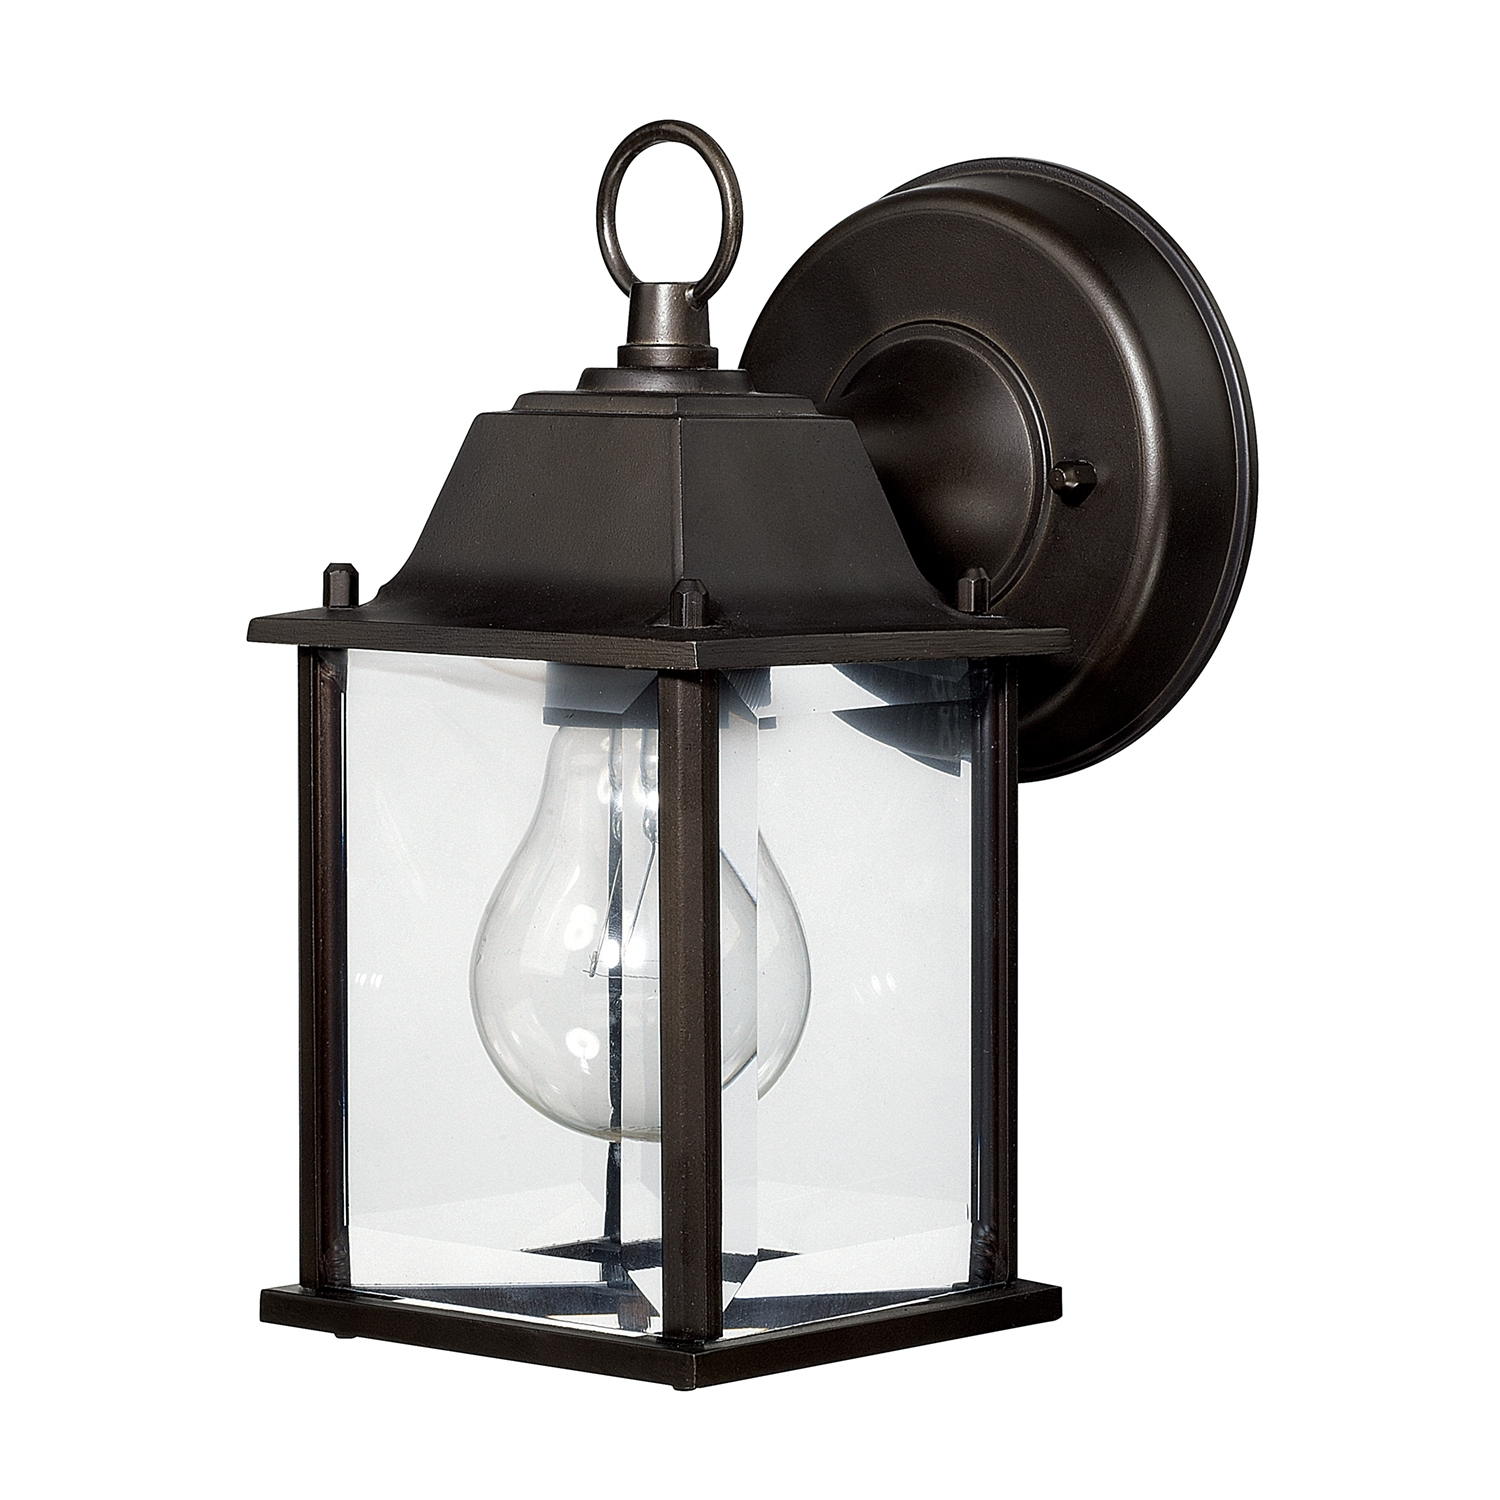 Cast Outdoor Lantern | Capital Lighting Fixture Company for Outdoor Cast Iron Lanterns (Image 6 of 20)